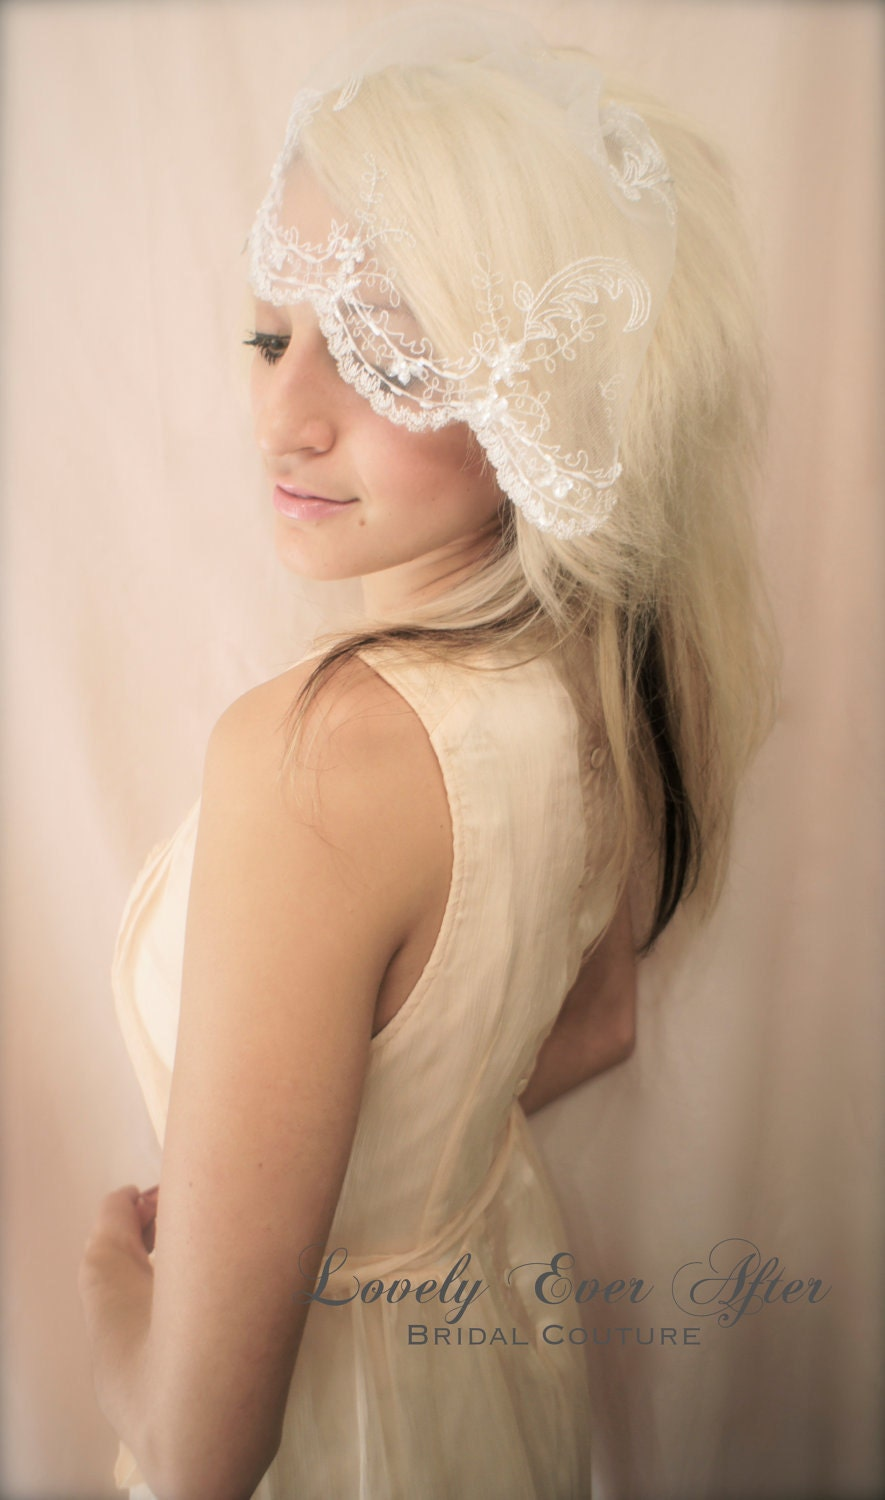 Wedding Day Bridal Scalloped Rhinestone Beaded Birdcage Veil